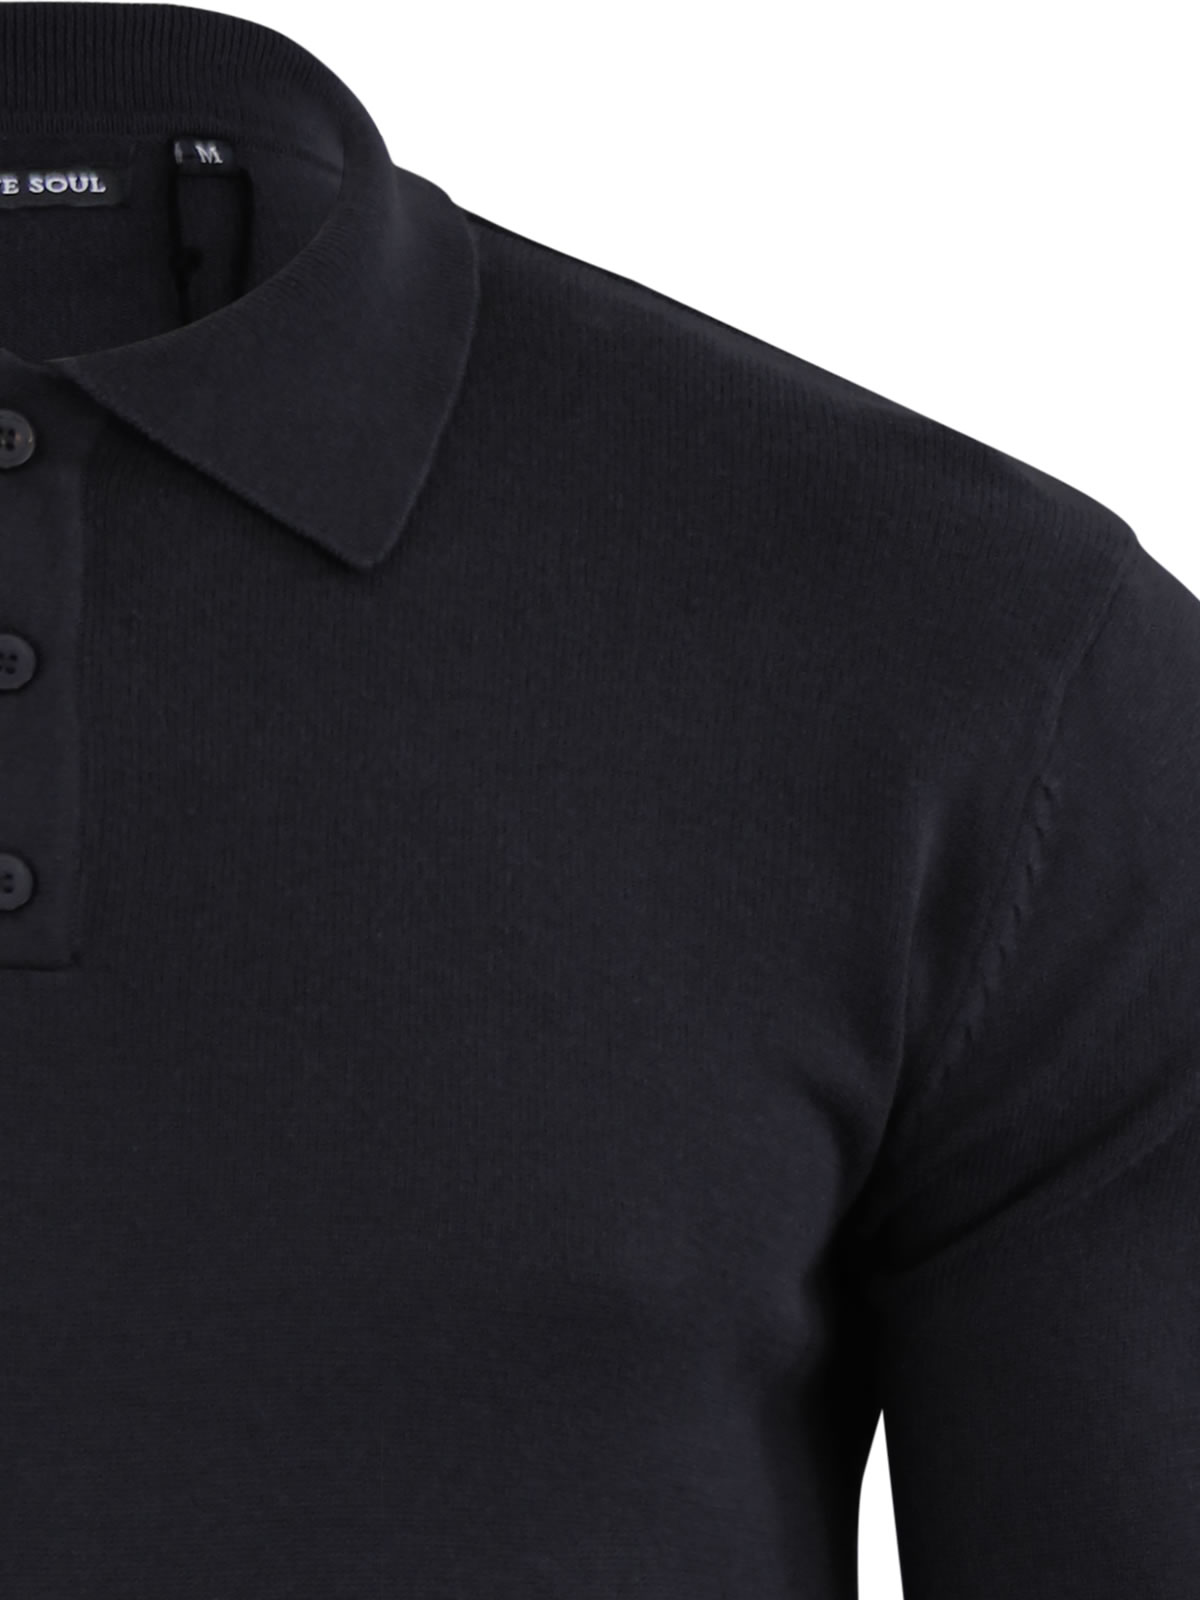 Mens-Knitted-Polo-T-Shirt-Brave-Soul-Placket-Collared-Jumper thumbnail 4